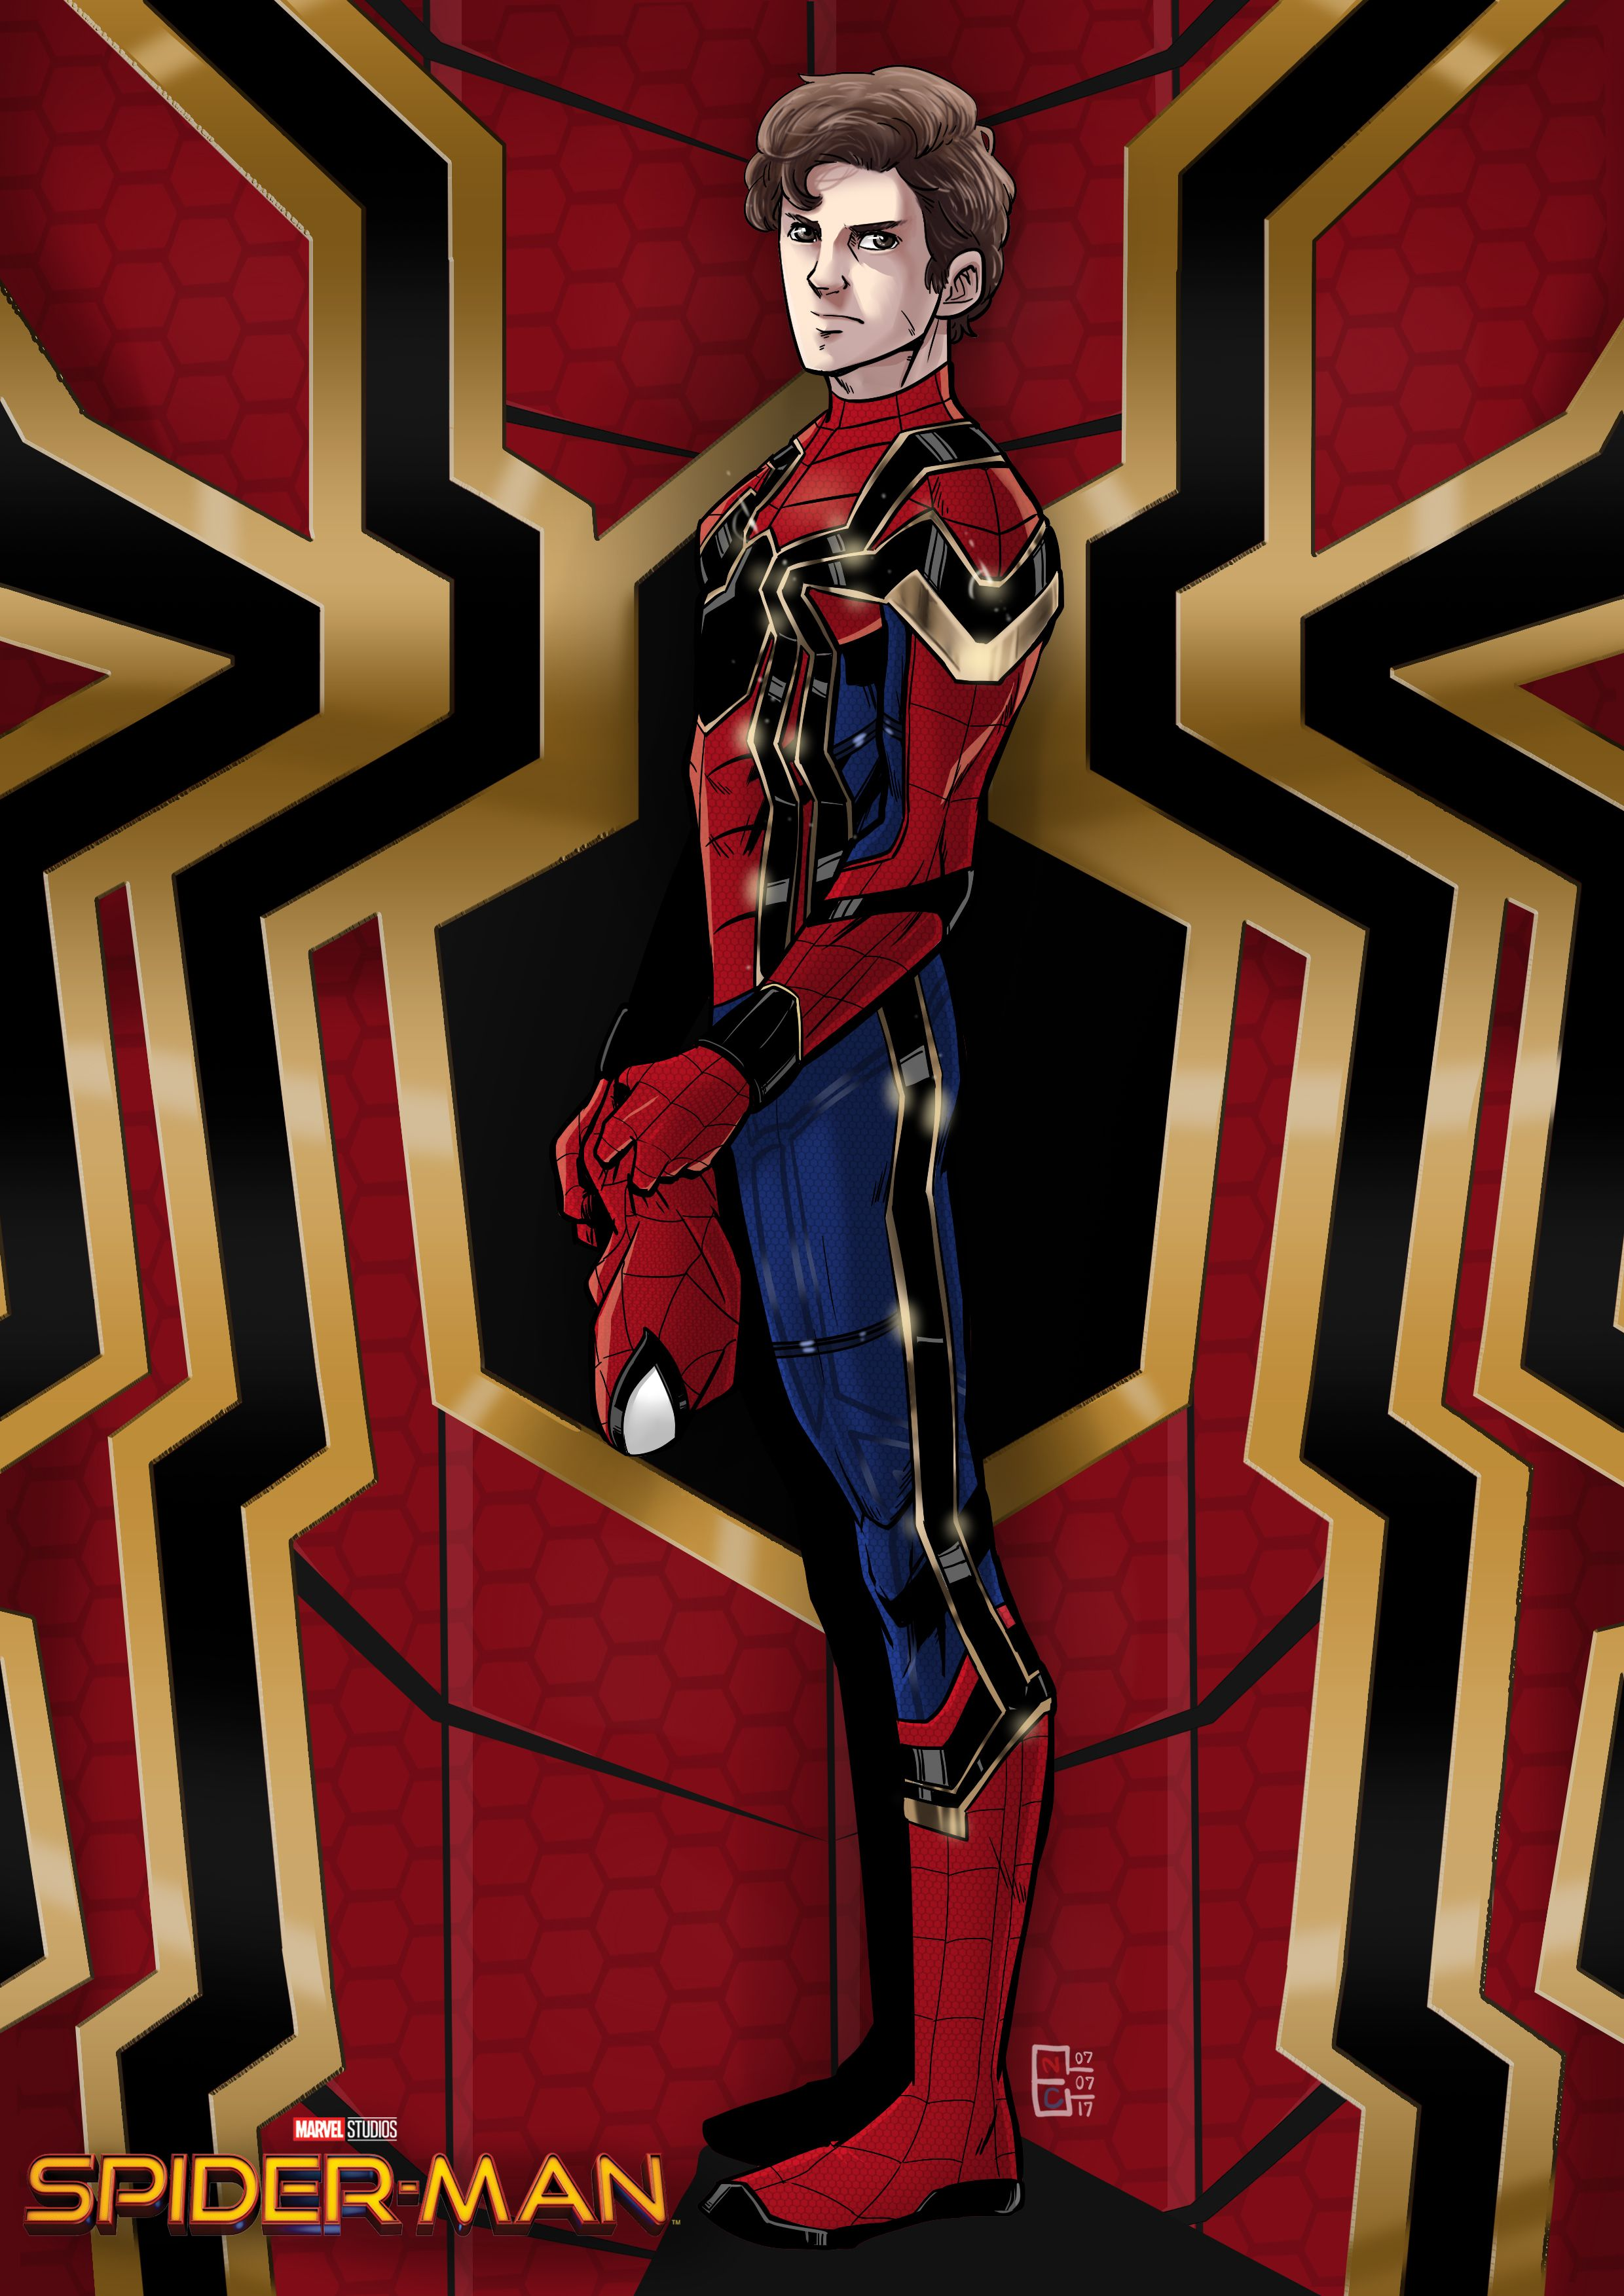 Iron Spider Suit - Spiderman : Homecoming Ver.(In my imagination Ha ...